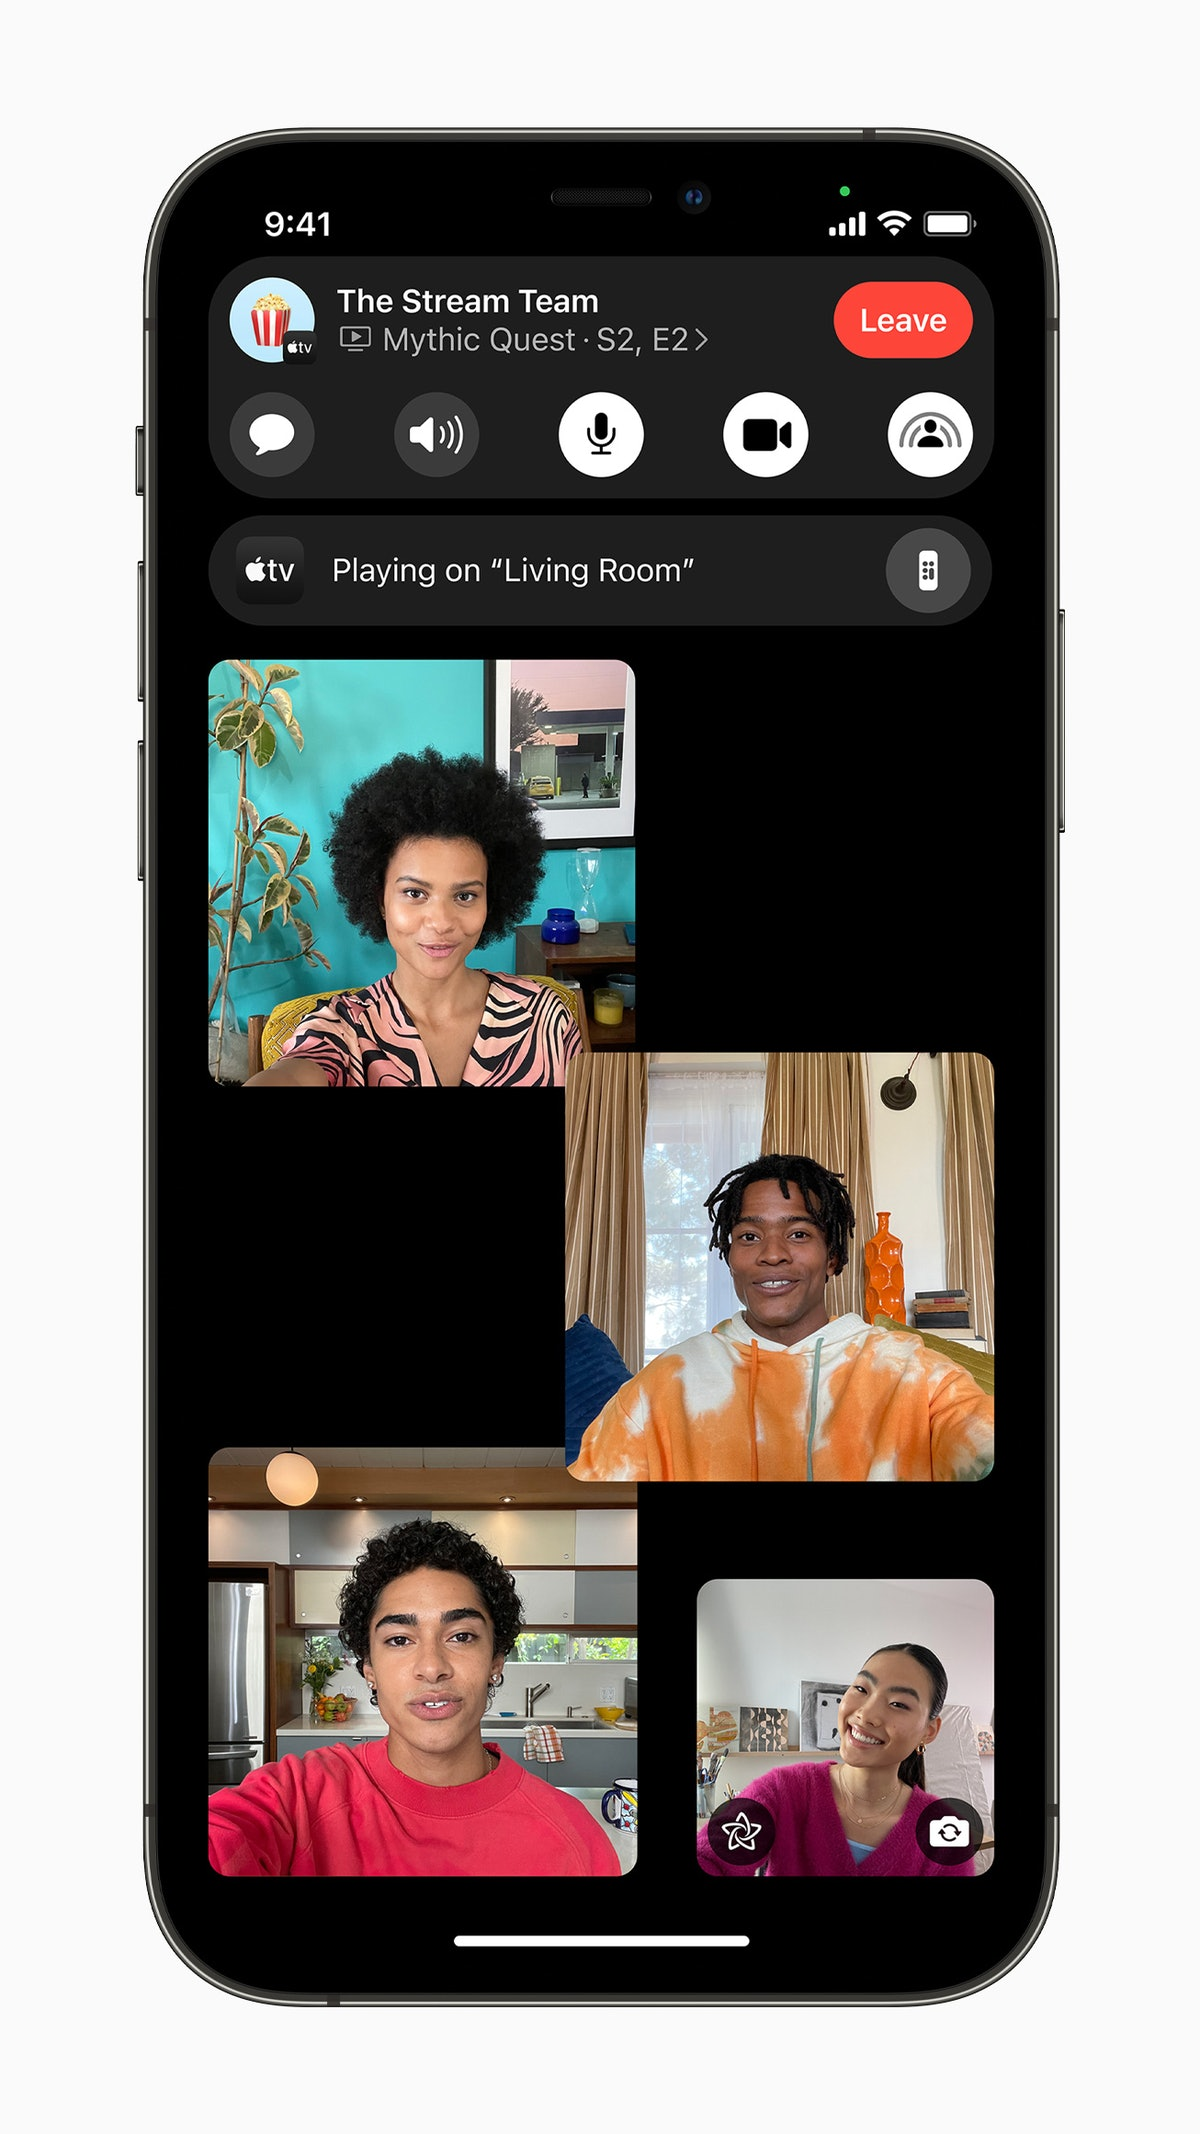 Apple's iOS 15 update is compatible with iPhone 6s, but some features like Spatial Audio on FaceTime require iPhone XR or later.